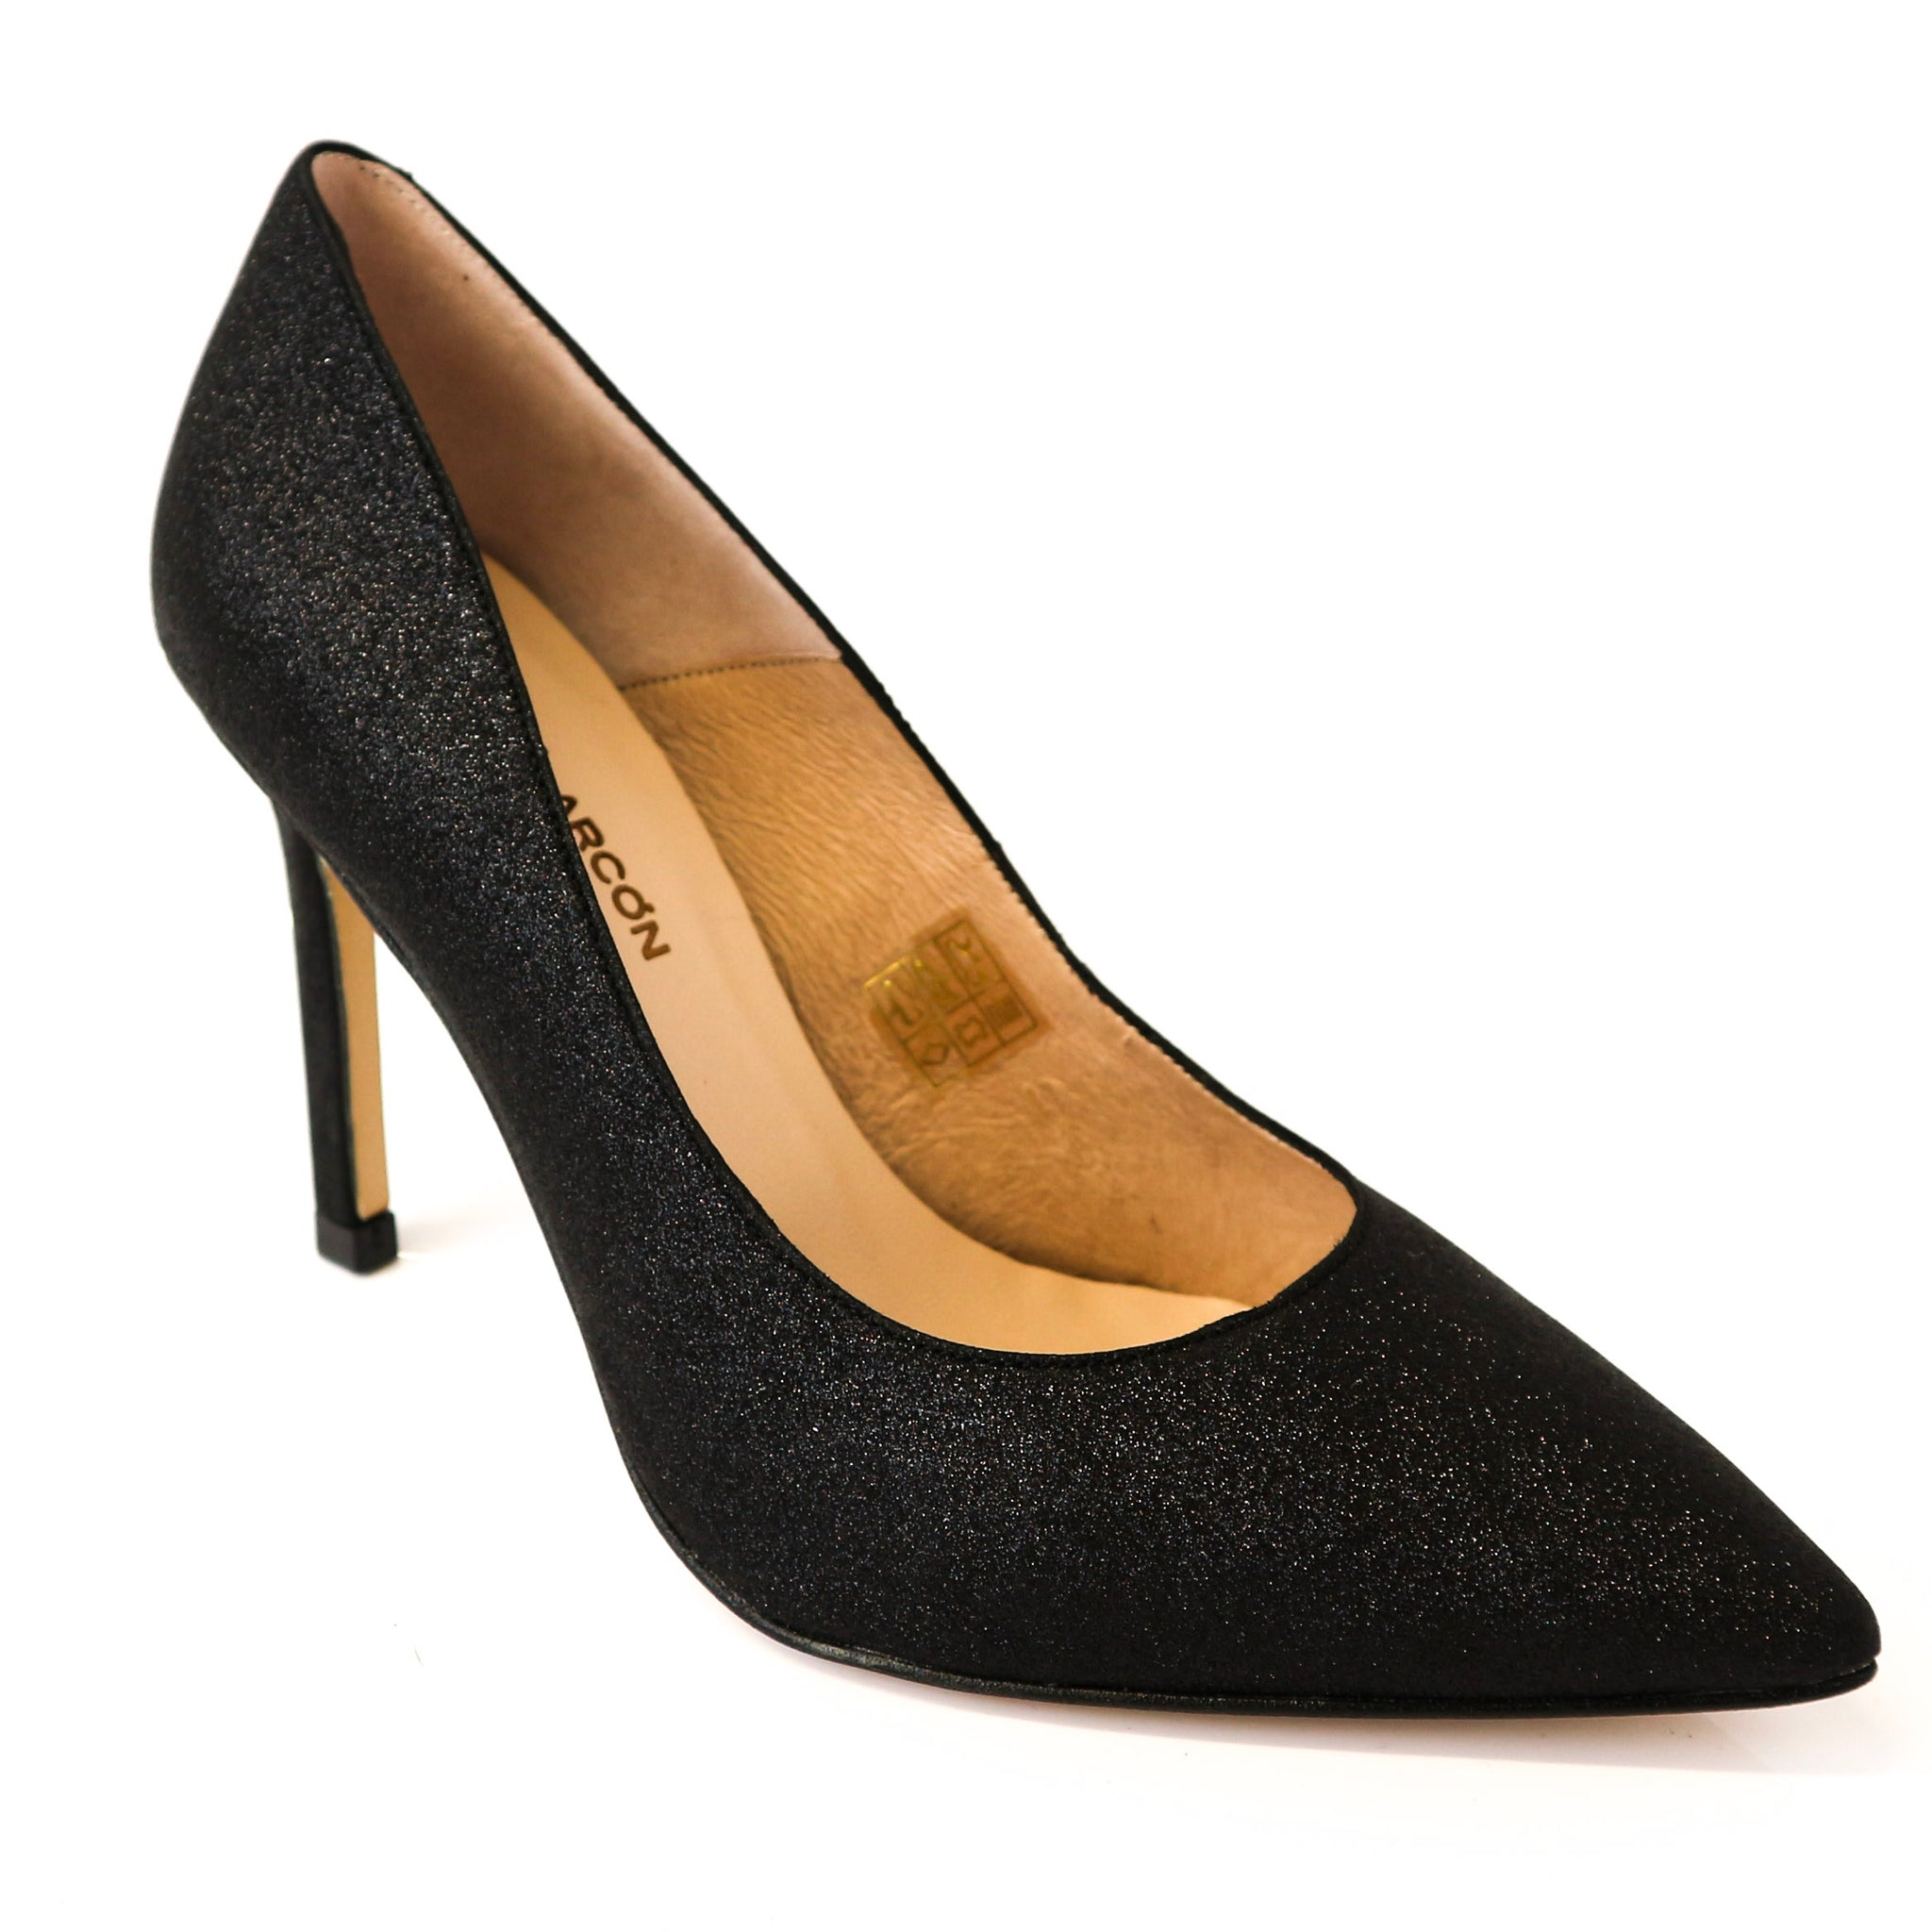 ZARA | Classic Black Pointed Toe Heels - TrystShoes